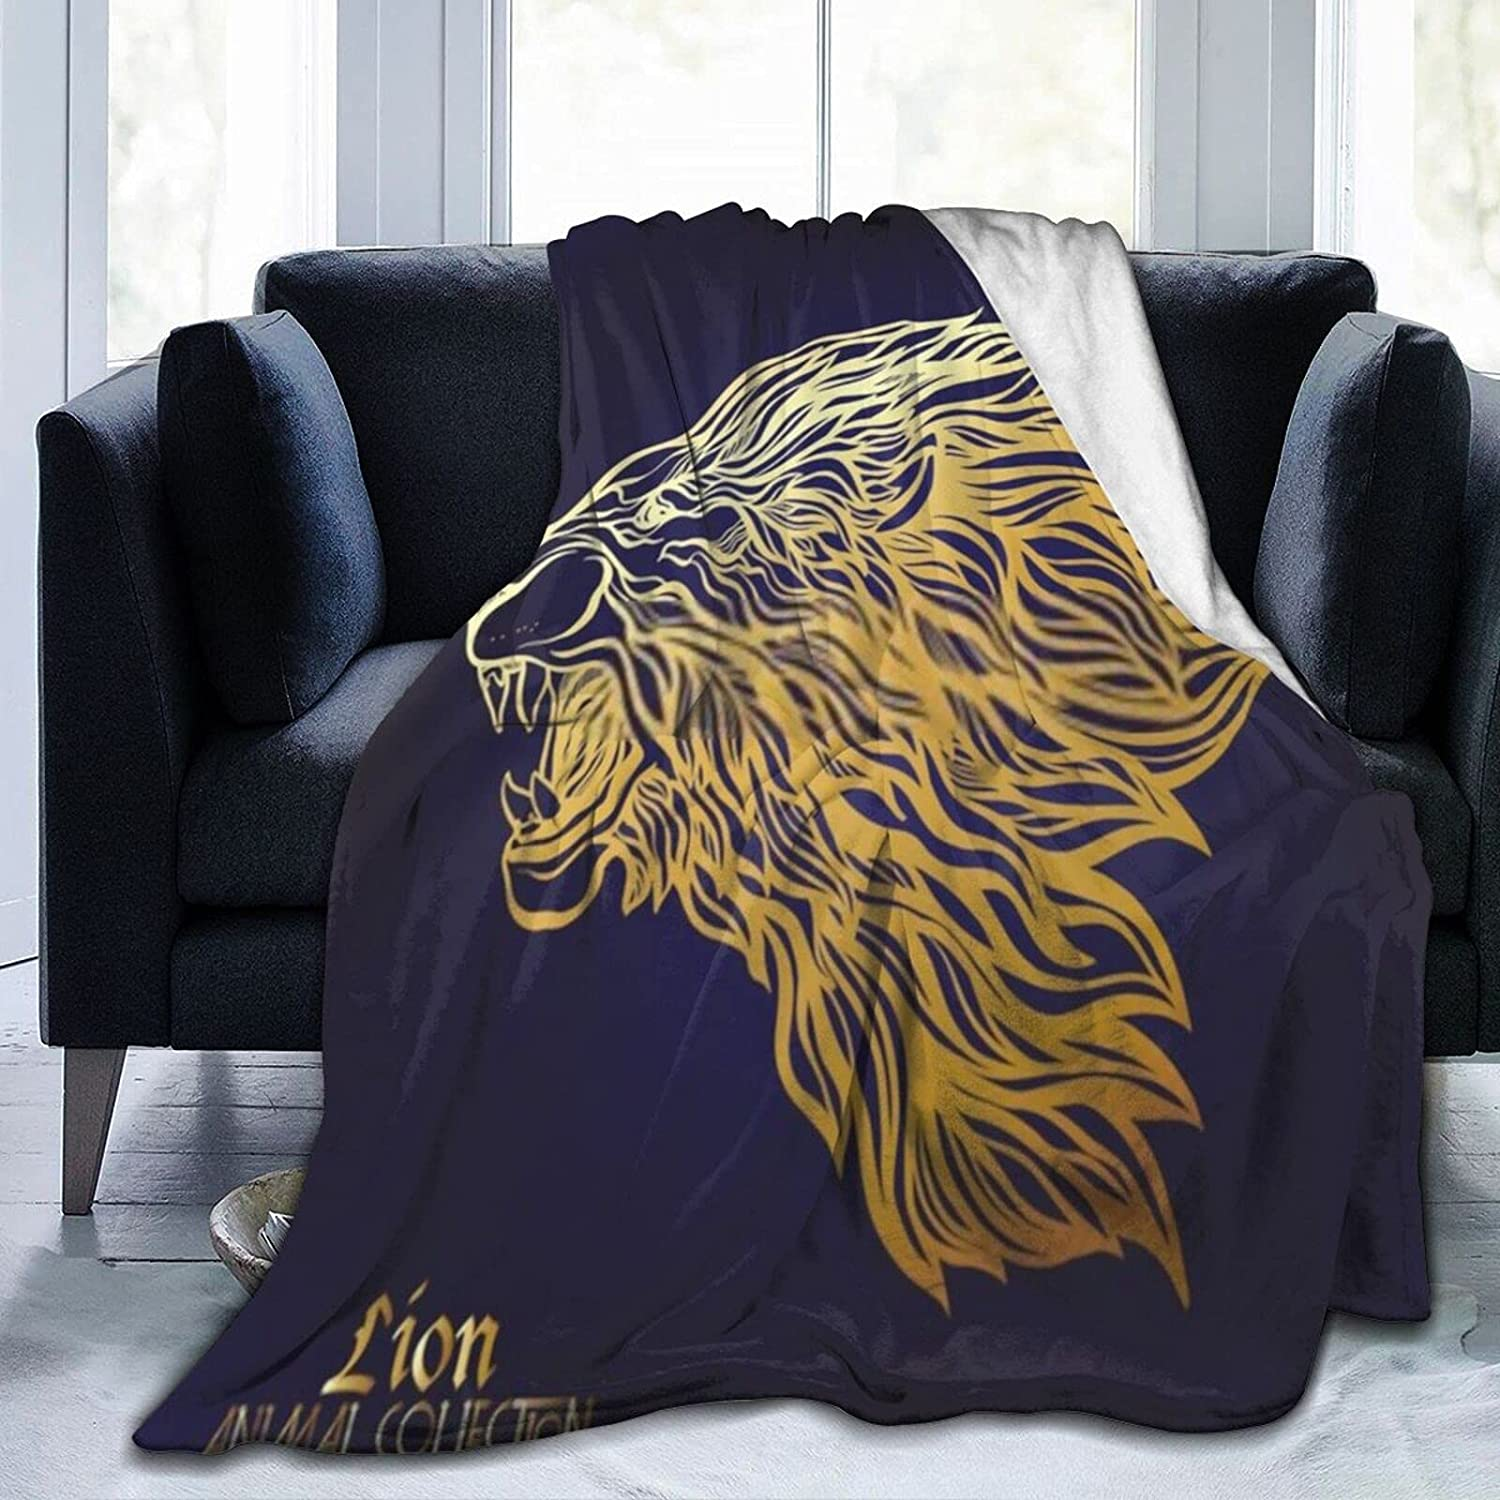 Black and Spring new work Gold African Lion1 Lowest price challenge Soft Super Comfortable Blanket